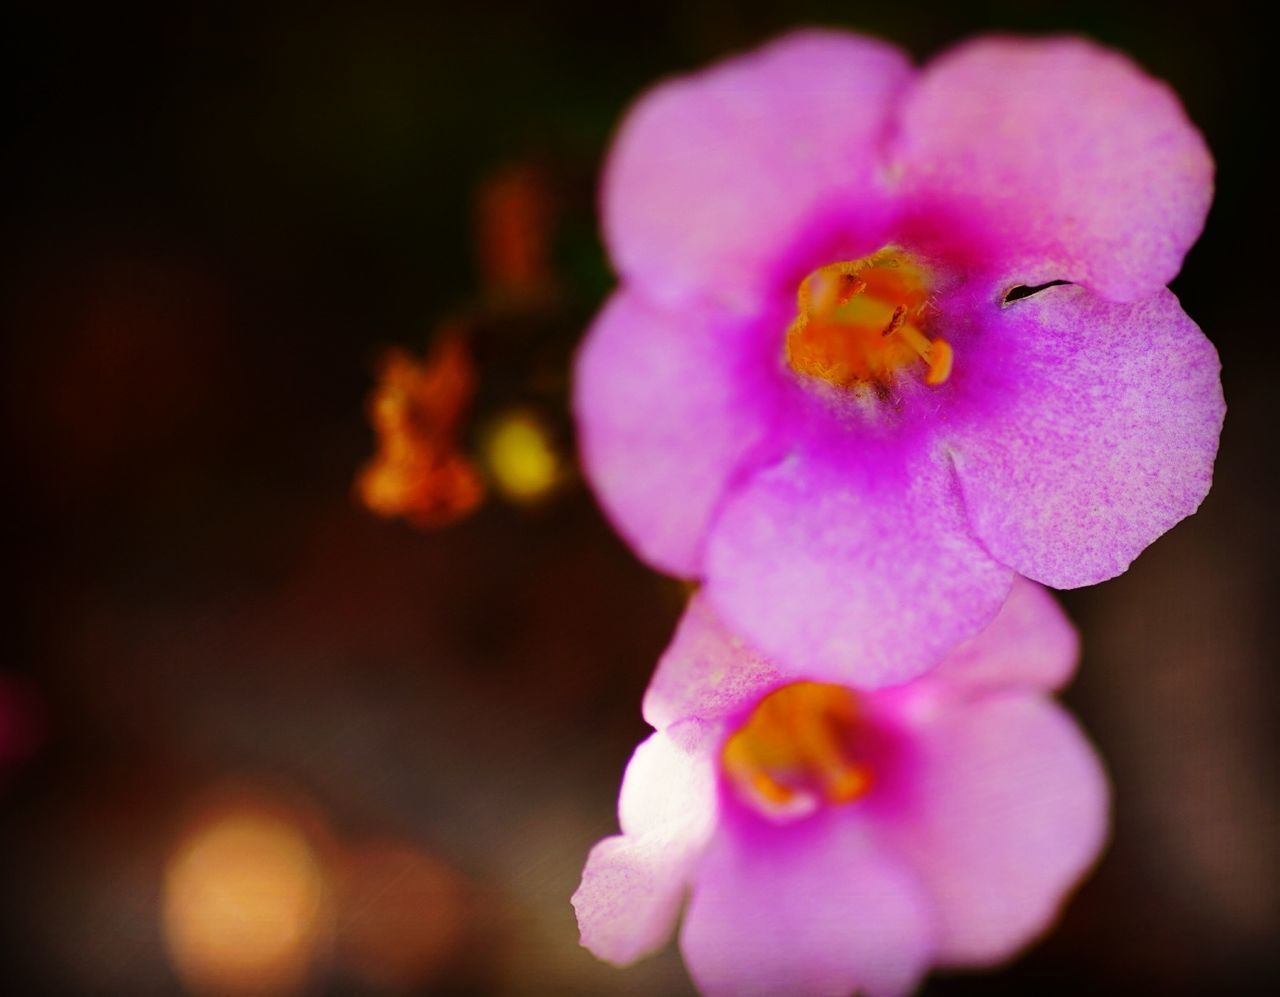 flower, petal, fragility, beauty in nature, flower head, nature, close-up, freshness, no people, plant, growth, outdoors, blooming, day